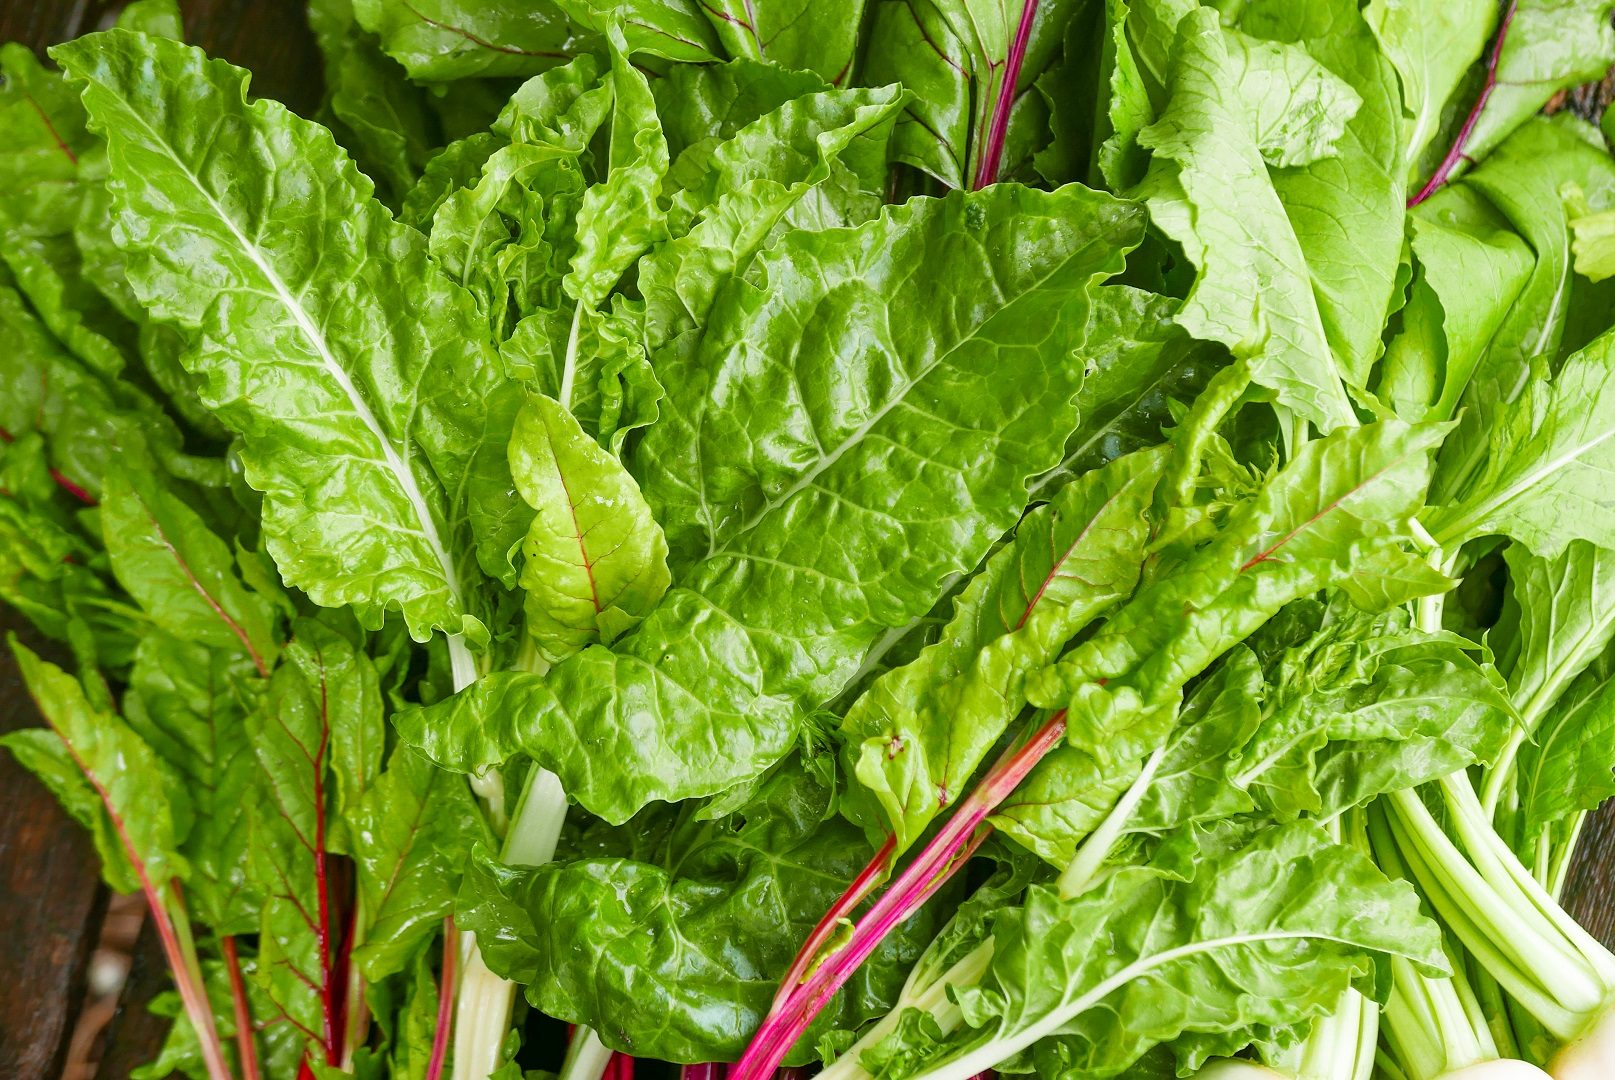 Leafy Greens Spinach Kale Lettuce